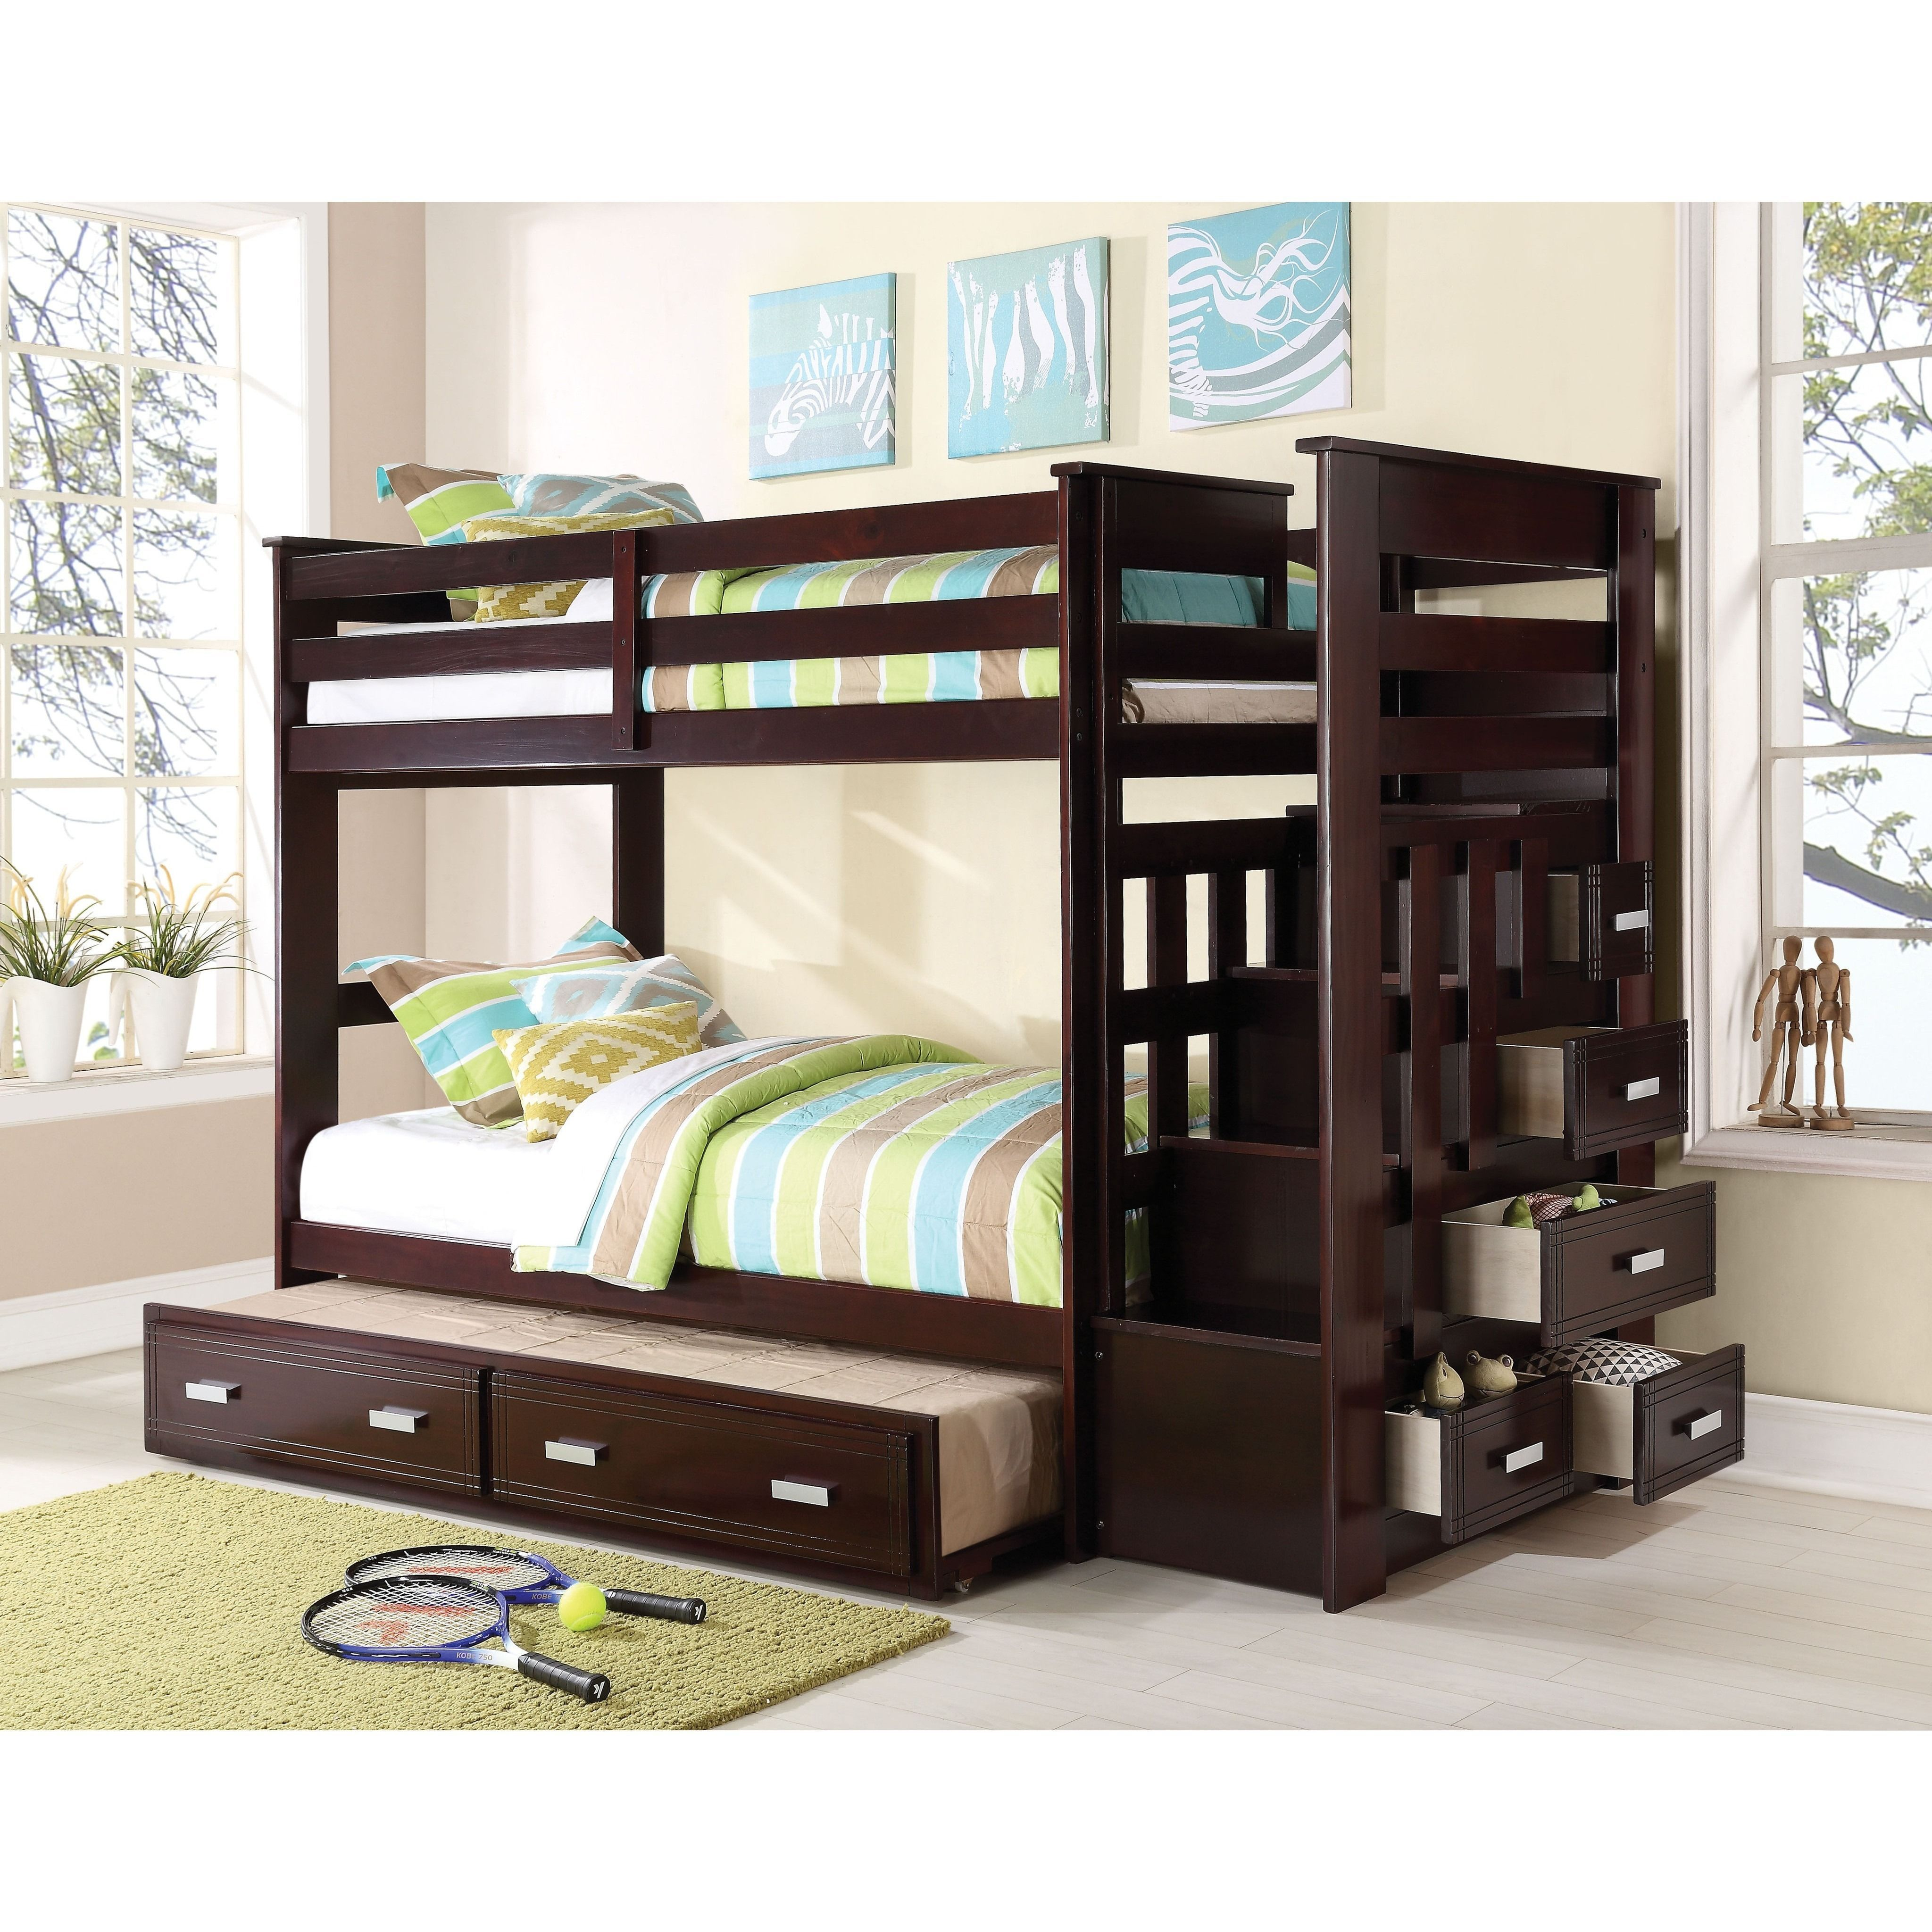 Tuffing loft bed ideas  Allentown Espresso Twin over Twin Bunk Bed with Trundle and Storage